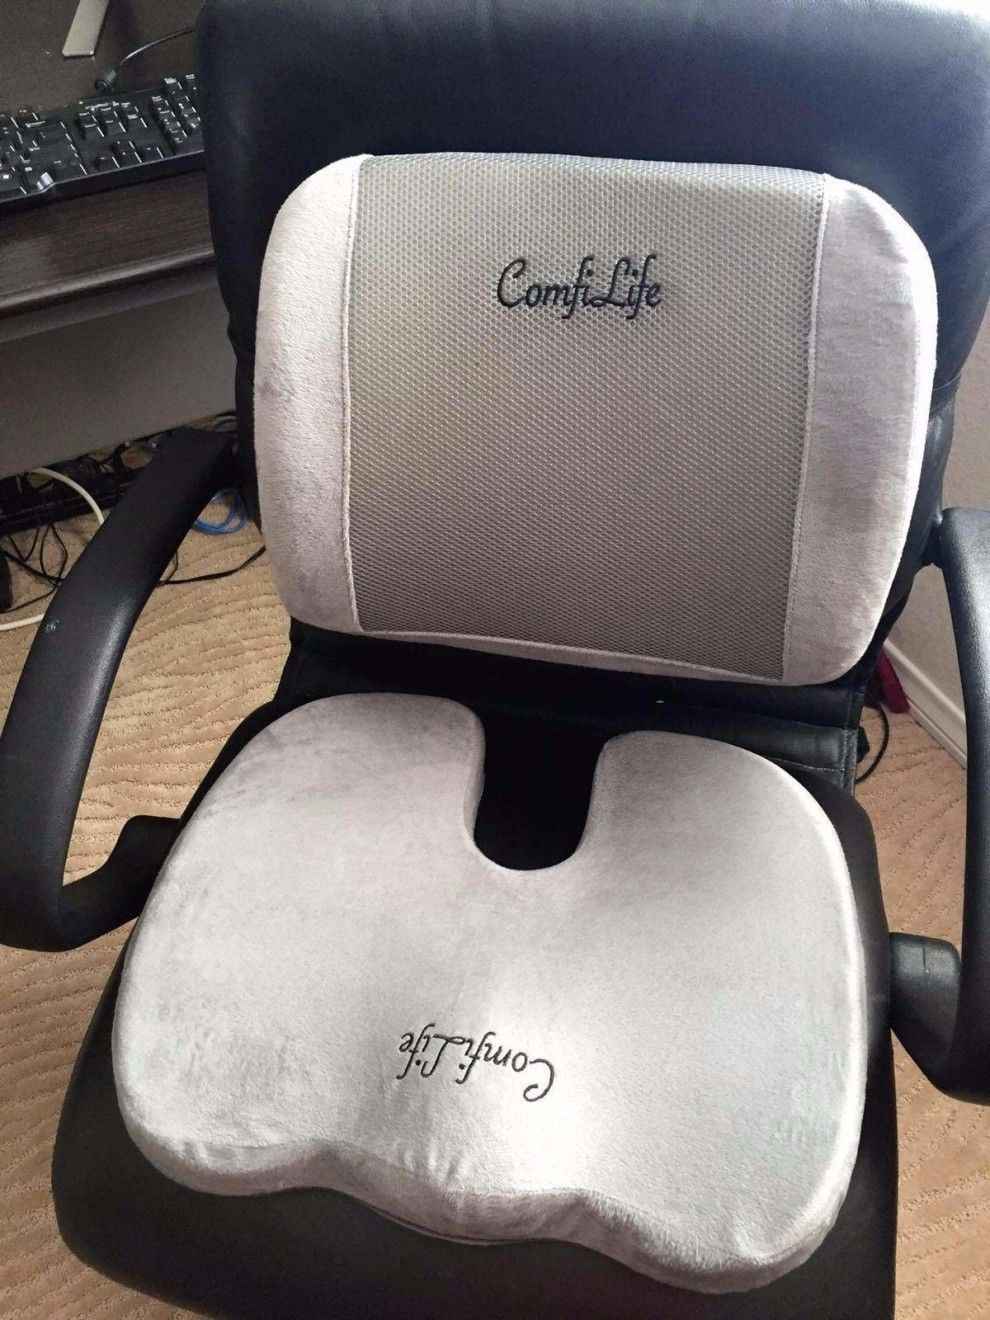 A memory foam seat cushion and lumbar pillow thatull make sitting